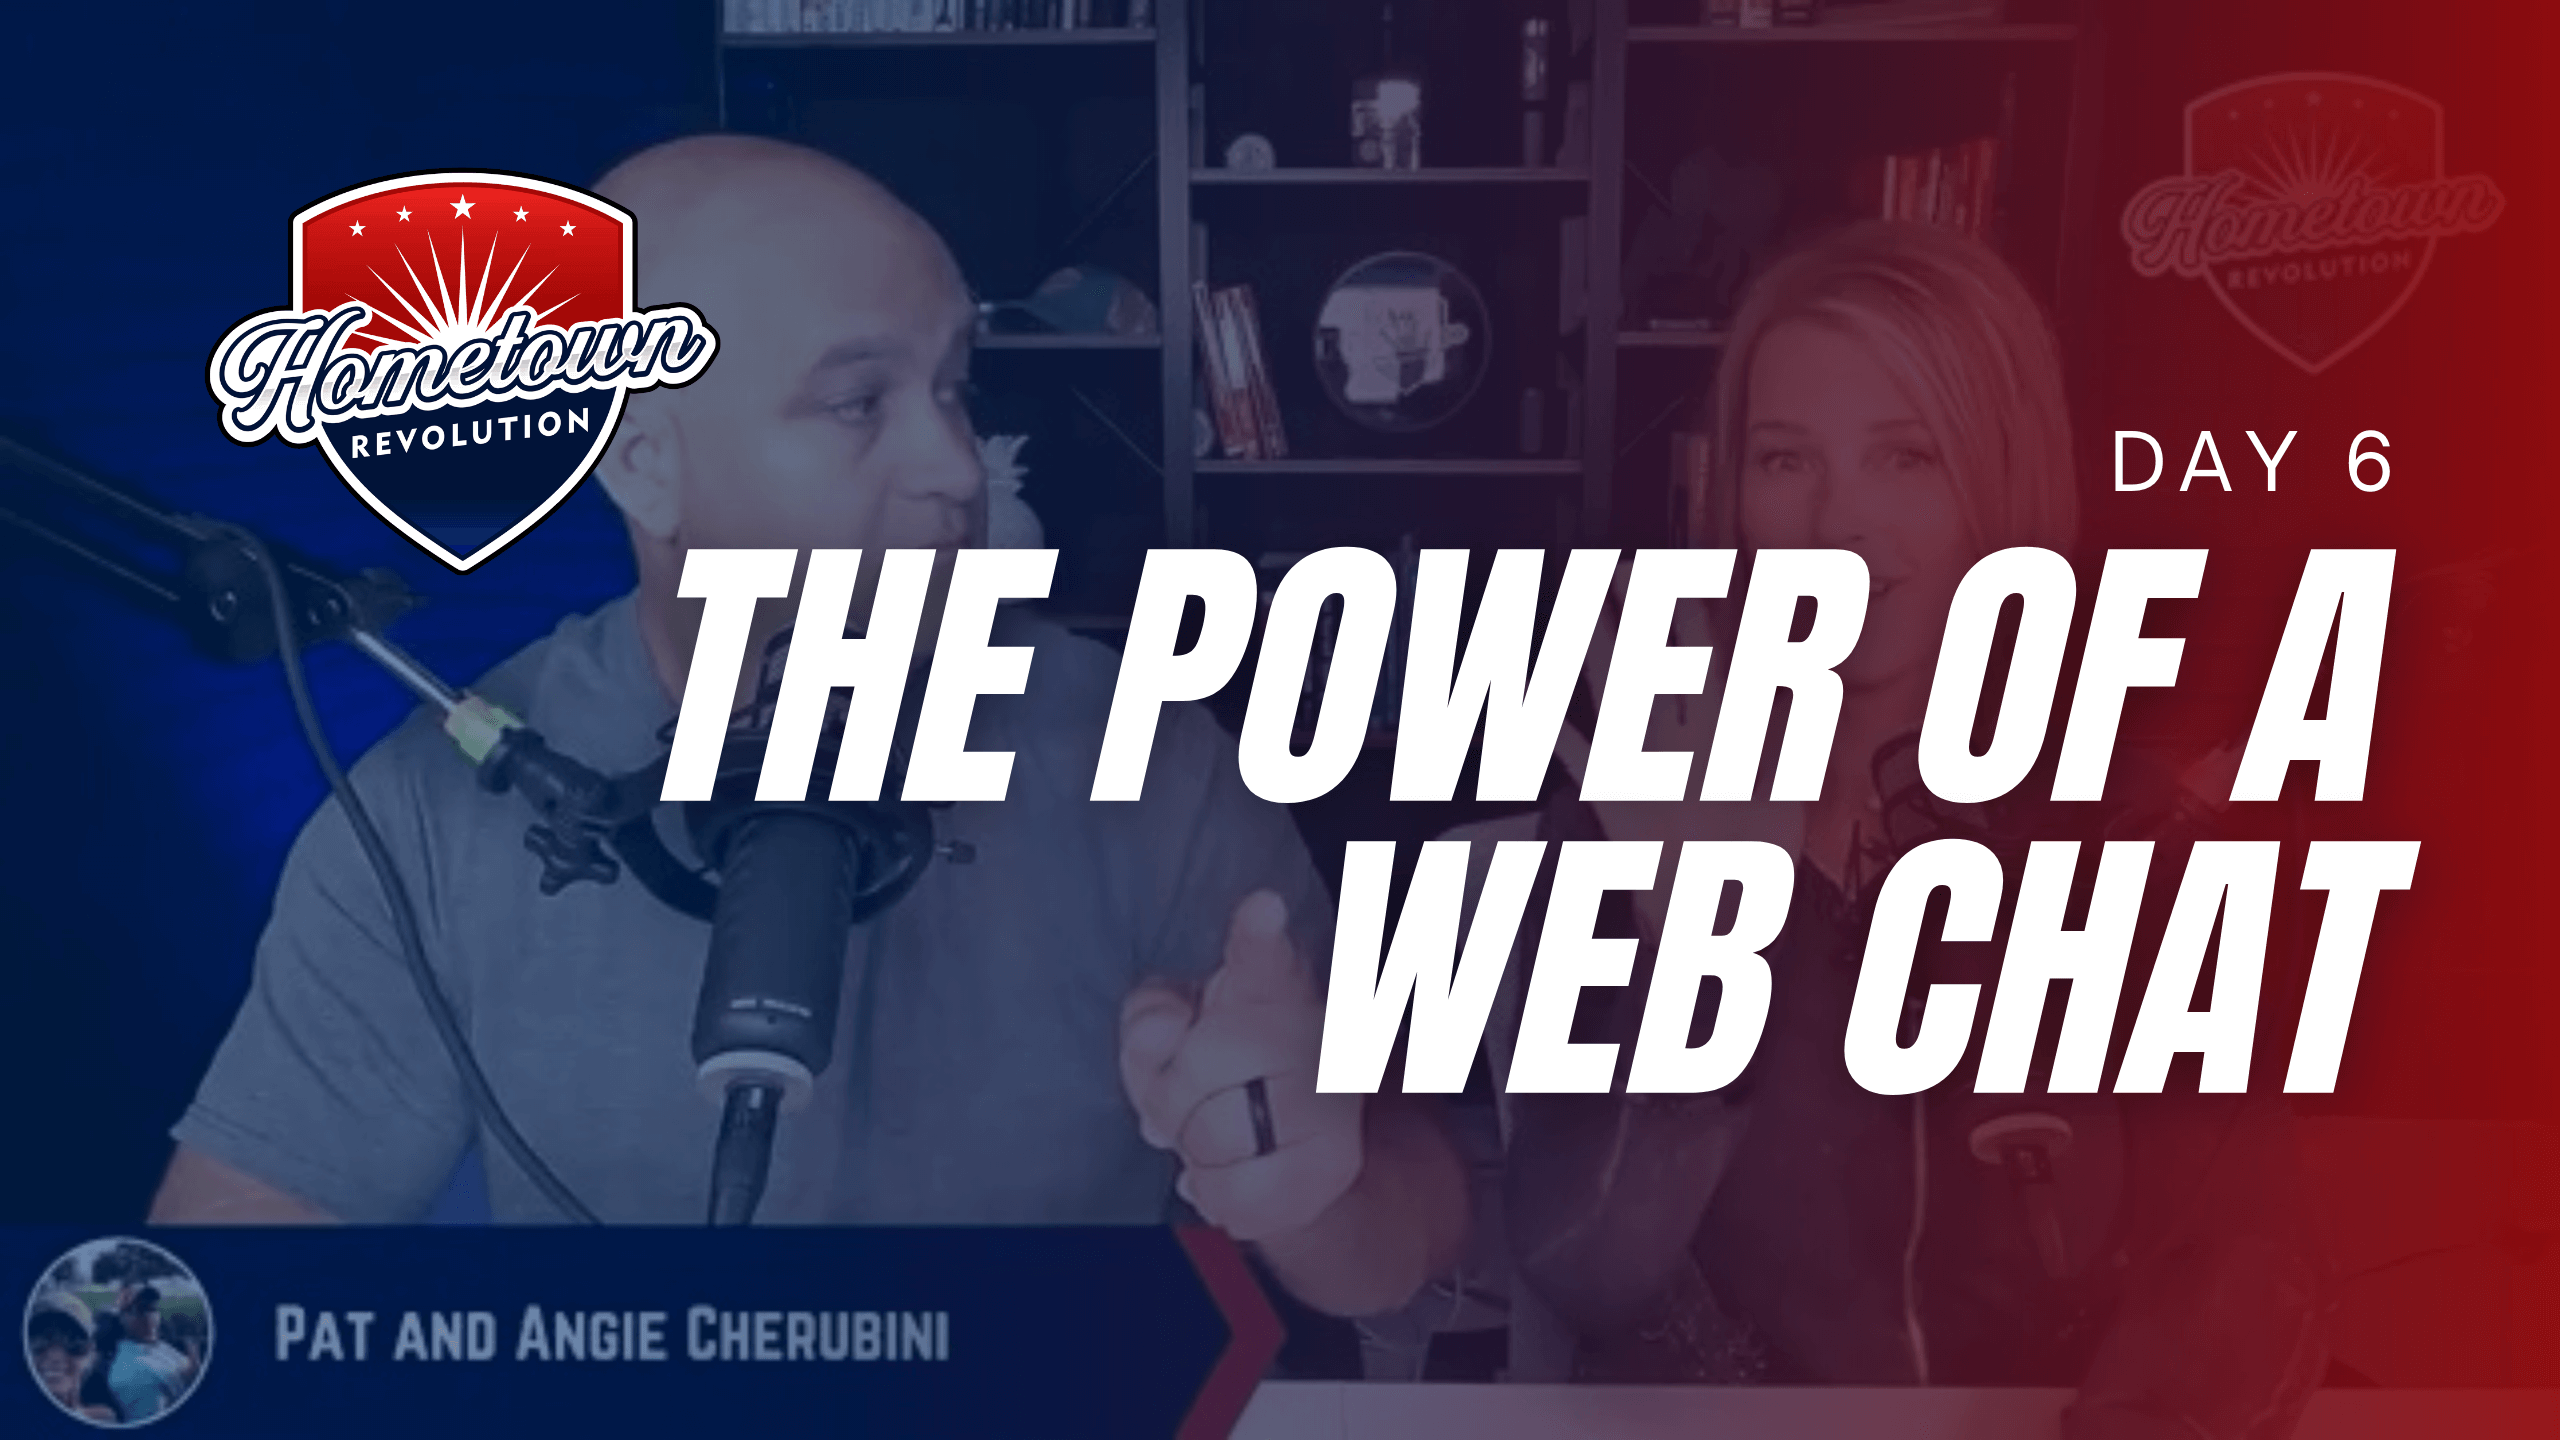 The Power of The Web Chat